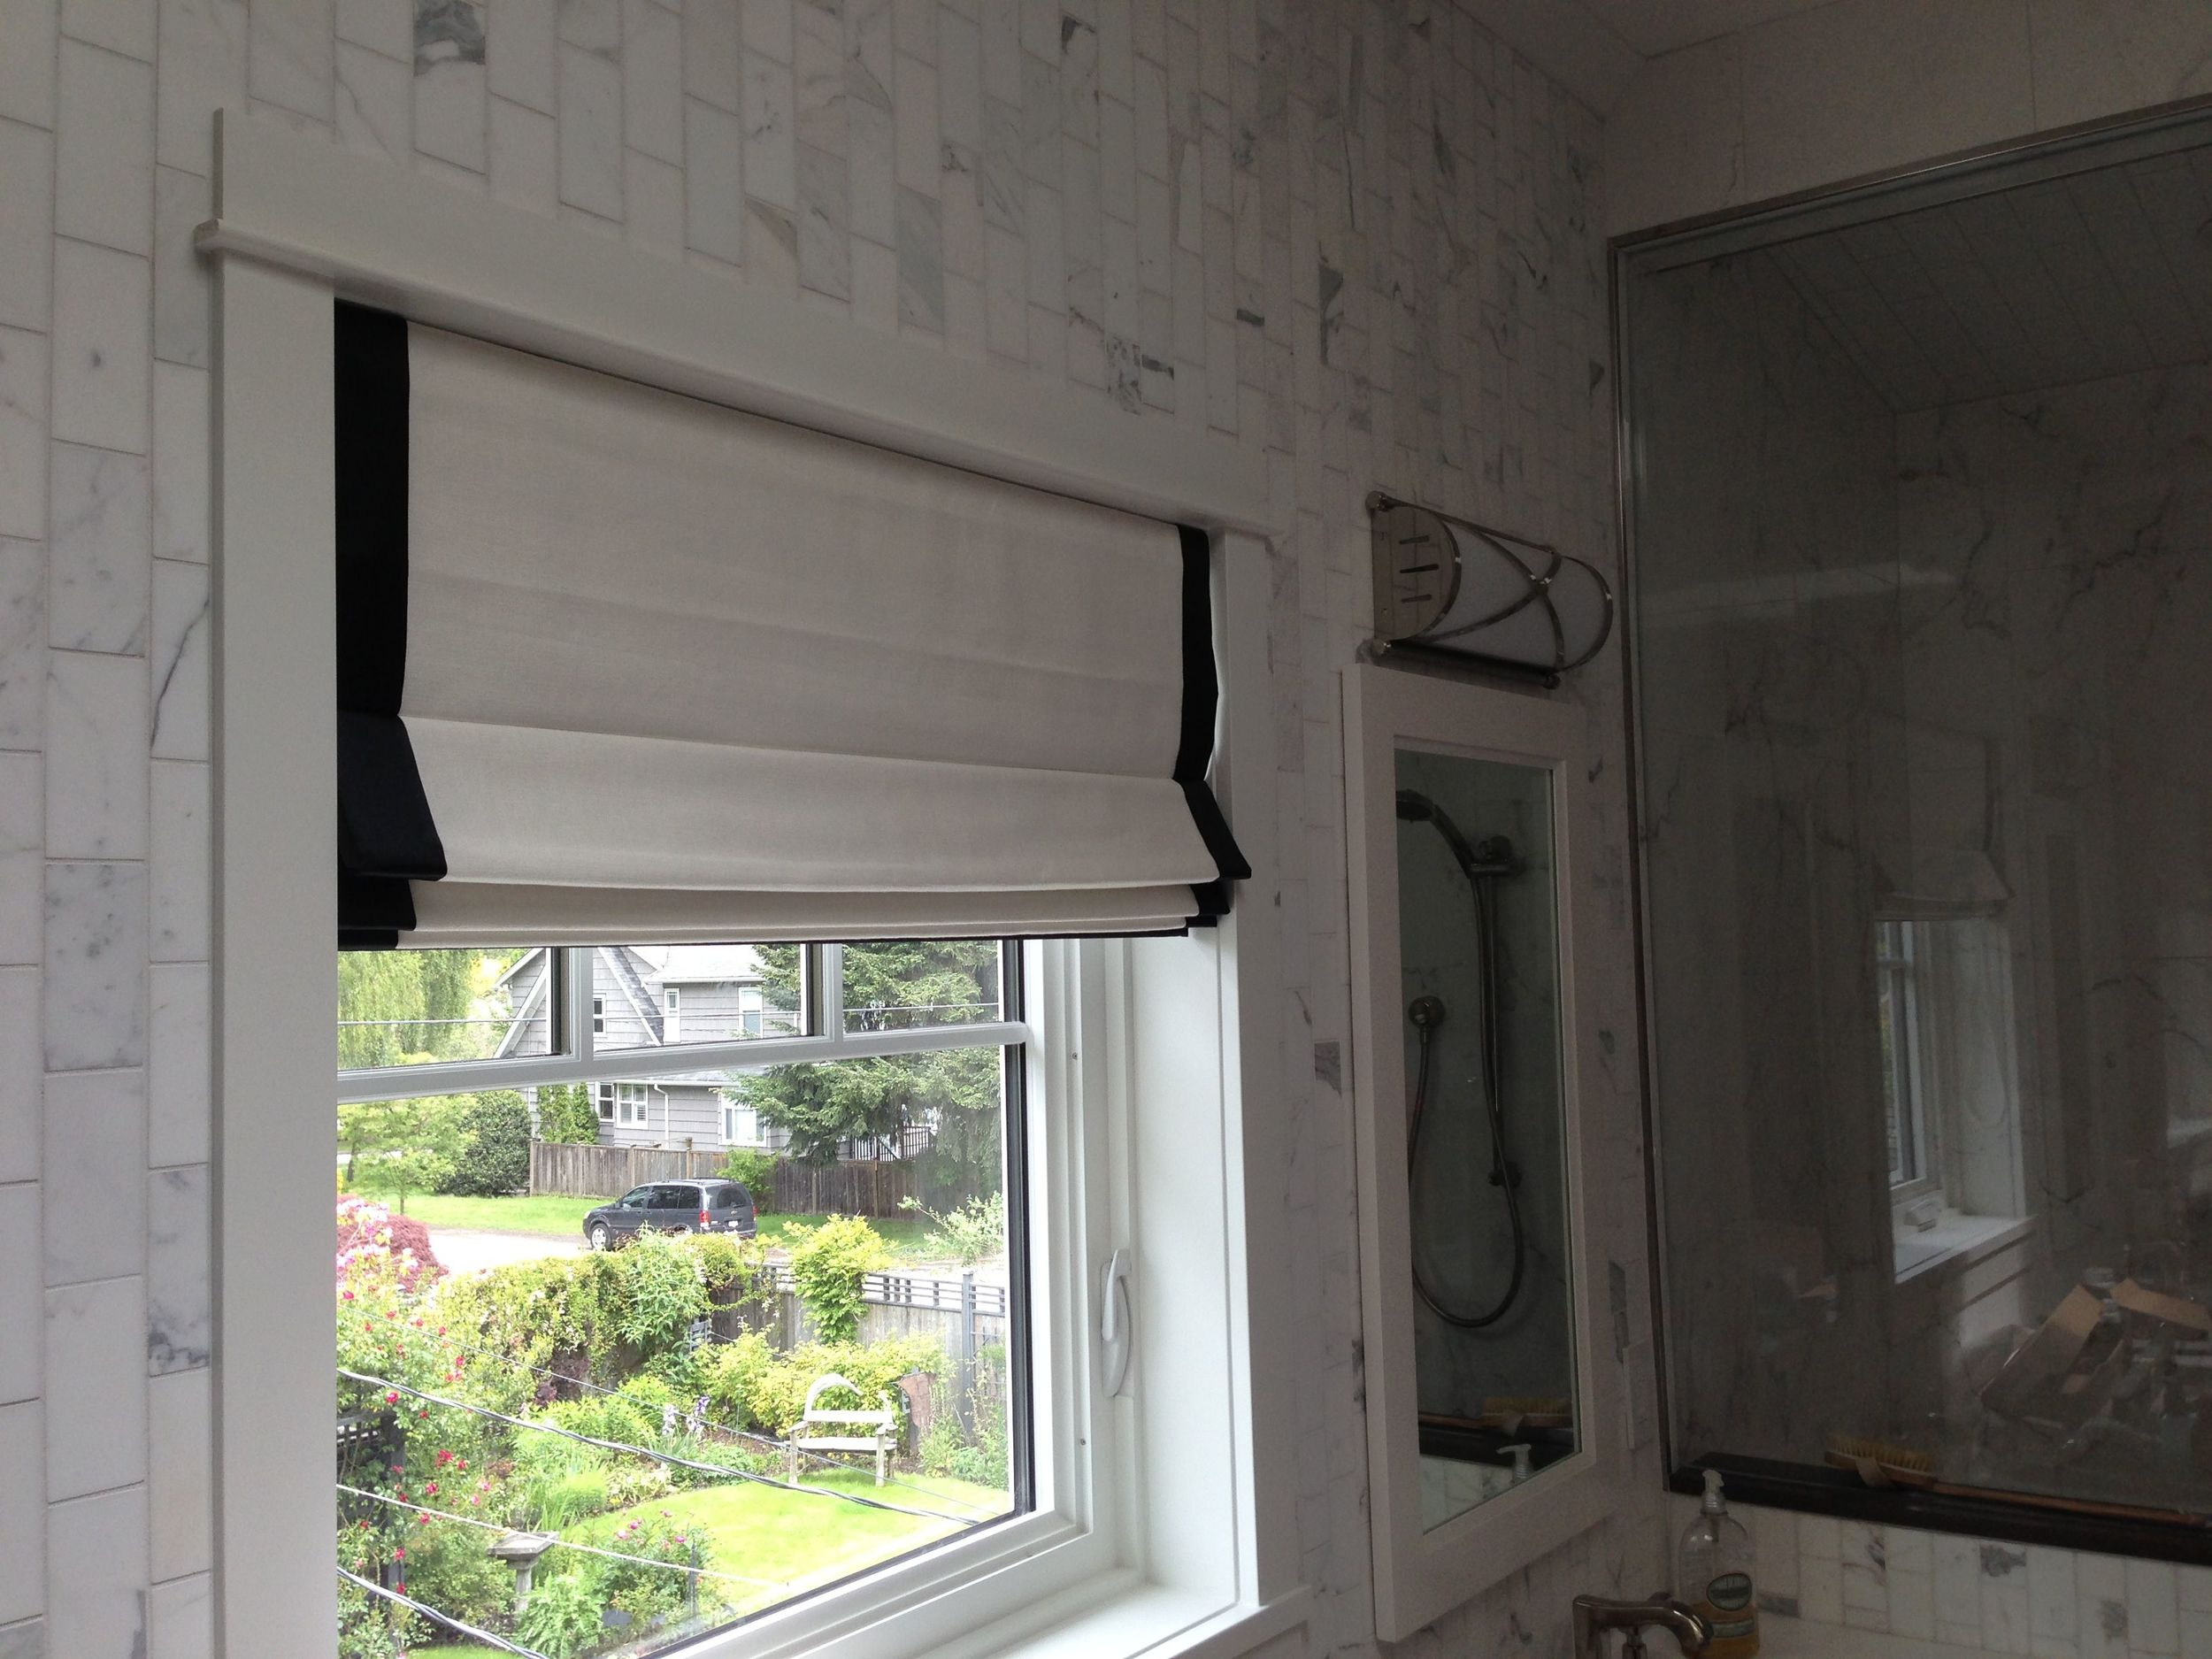 The Master Bathroom has the same roman valance treatment, Classic Chic, but it sets off the calacutta tile and the Robert Abbey lighting nicely.